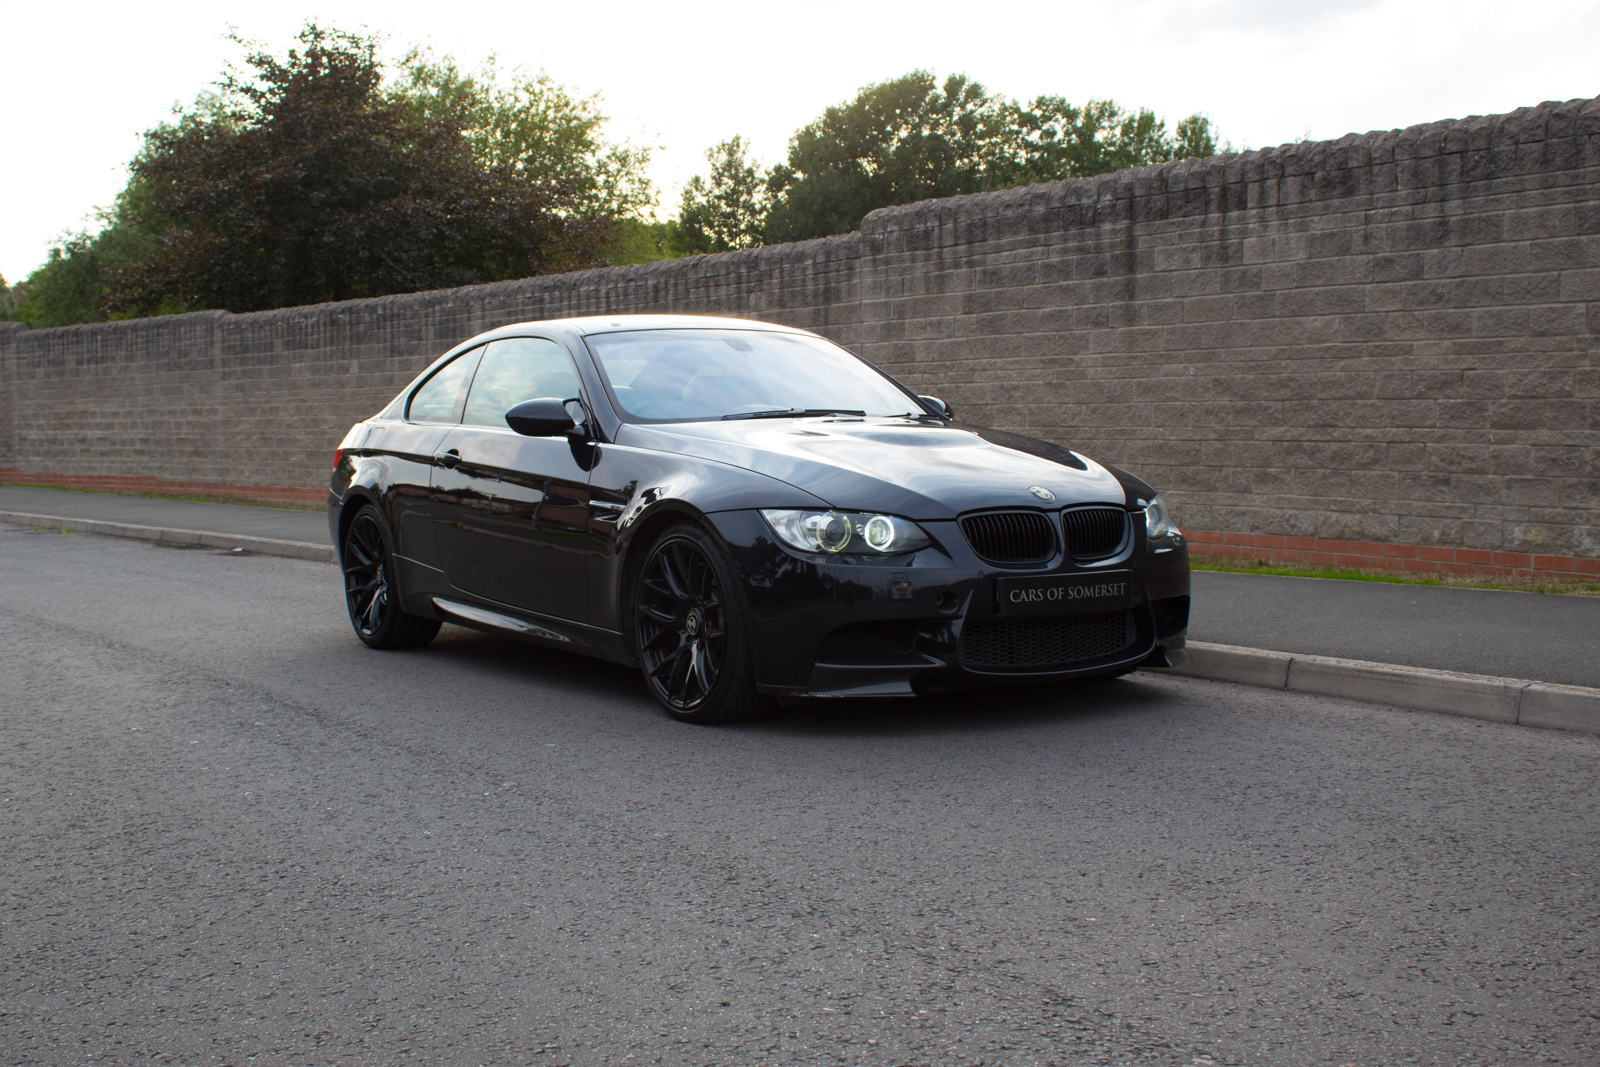 Sold 2007 Bmw M3 E92 Coupe Cars Of Somerset